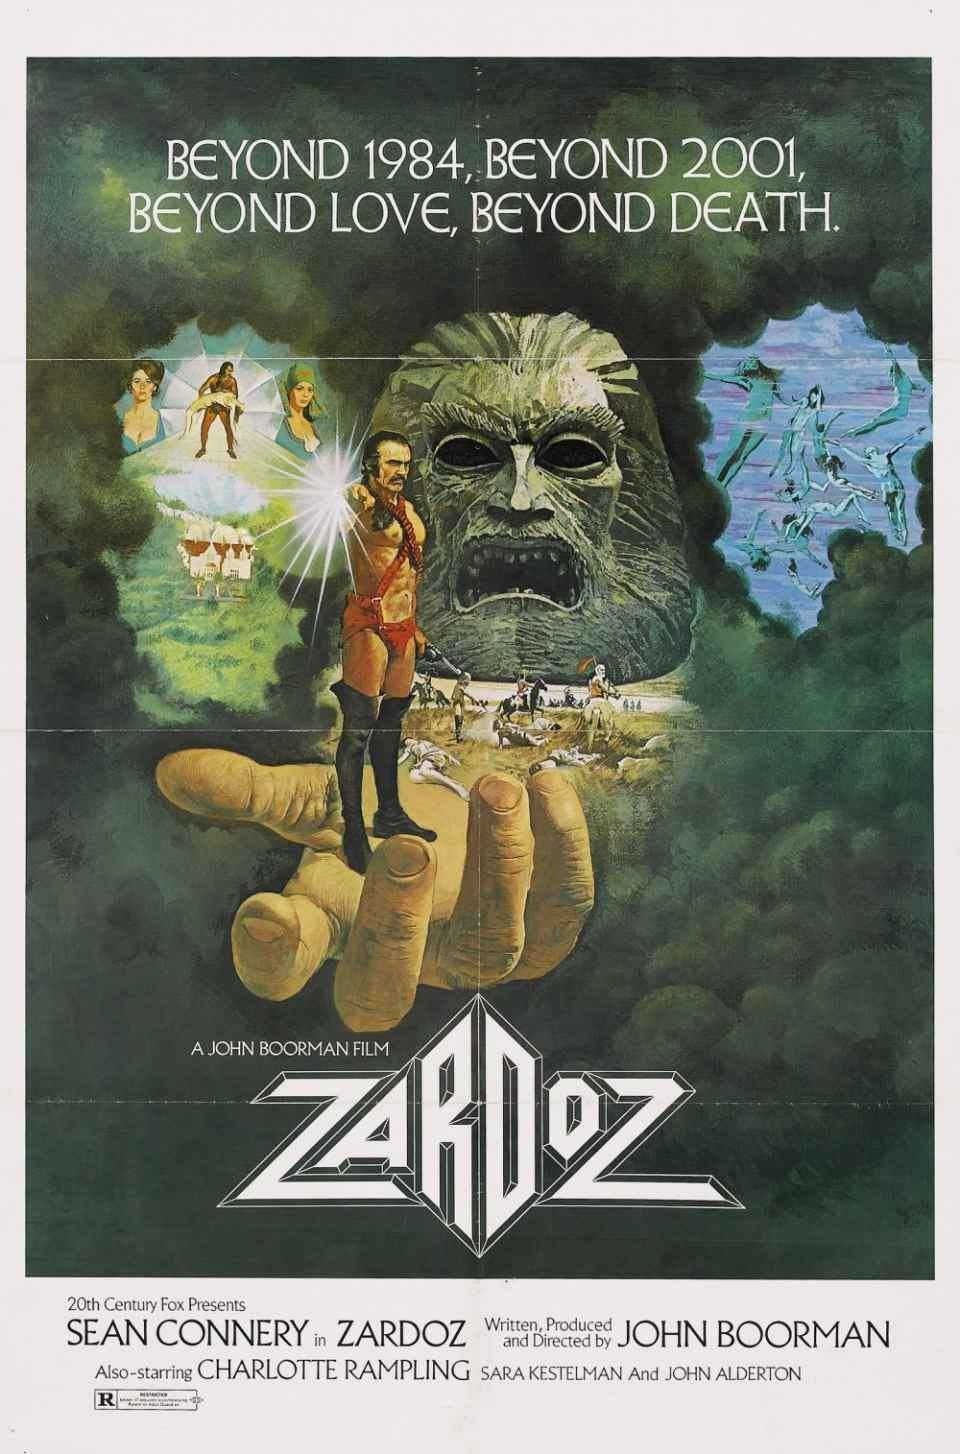 35 Best Sci-Fi Movie Posters From The 70s And 80s - Airows